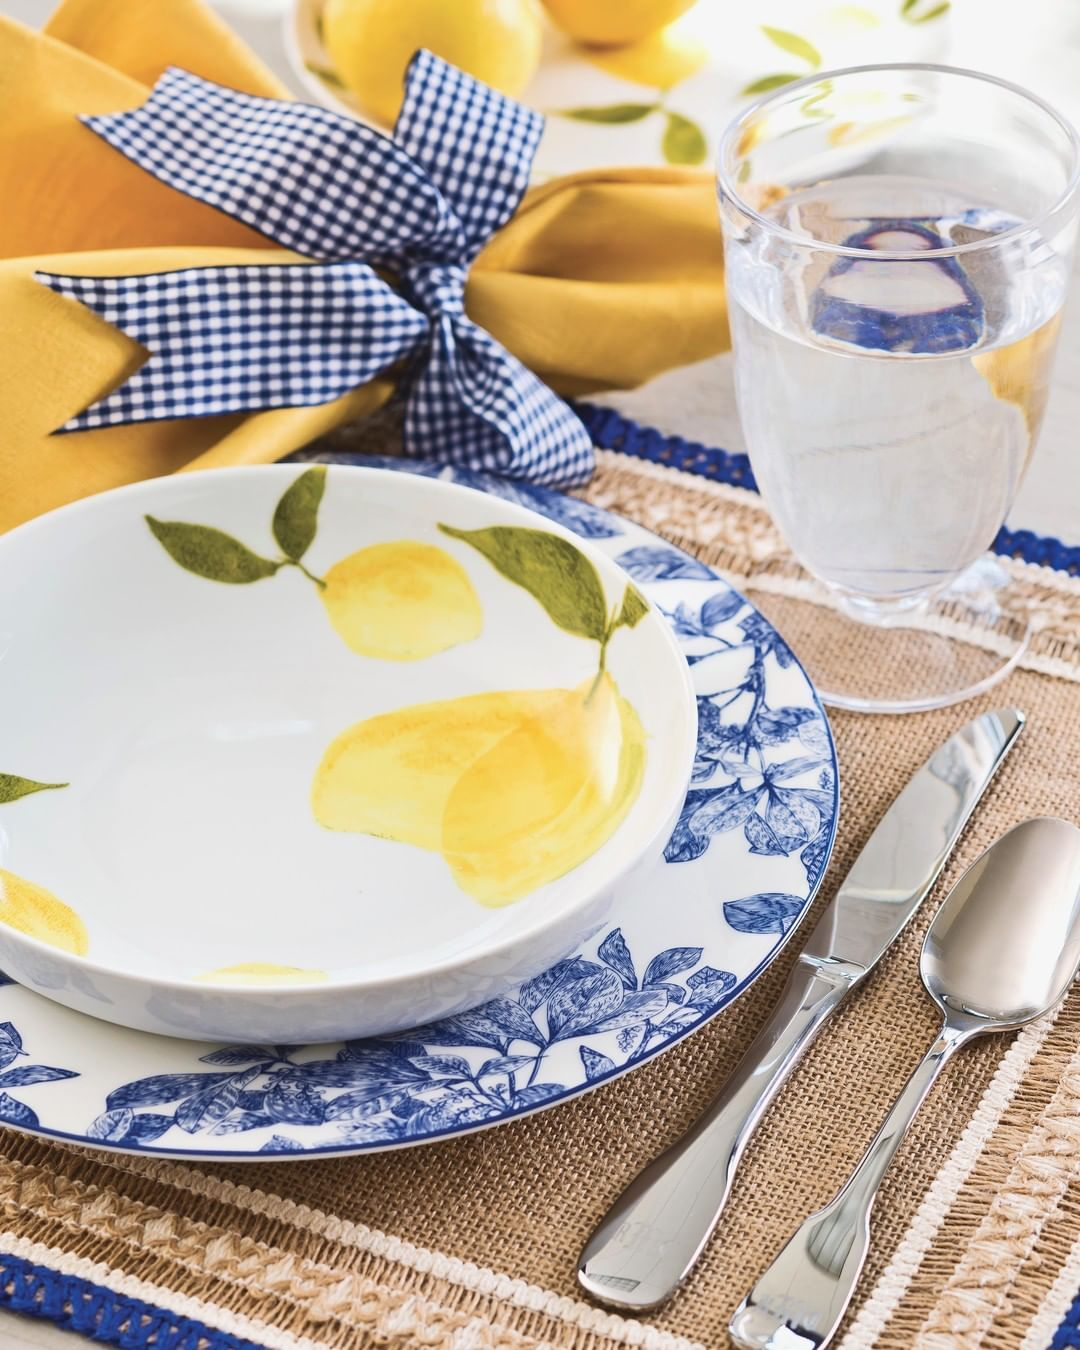 Southern Lady Magazine On Instagram Citrus Shades Embody The Vibrancy Of Warmer Weather With A Border Of Cobal Blue Table Settings Lemon Kitchen